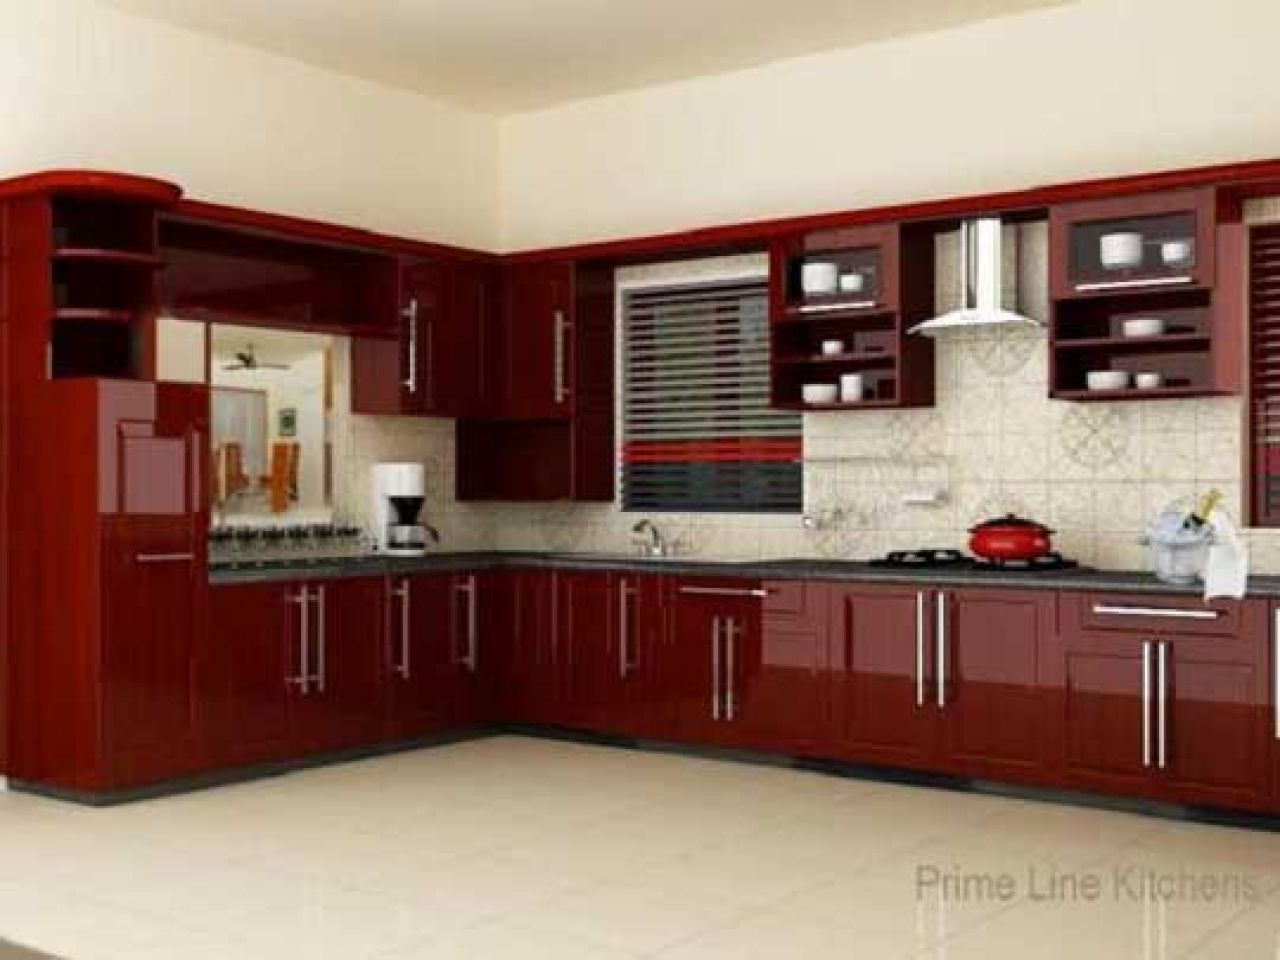 New Model Kitchen Design Kerala Conexaowebmix Com Kitchen Interior